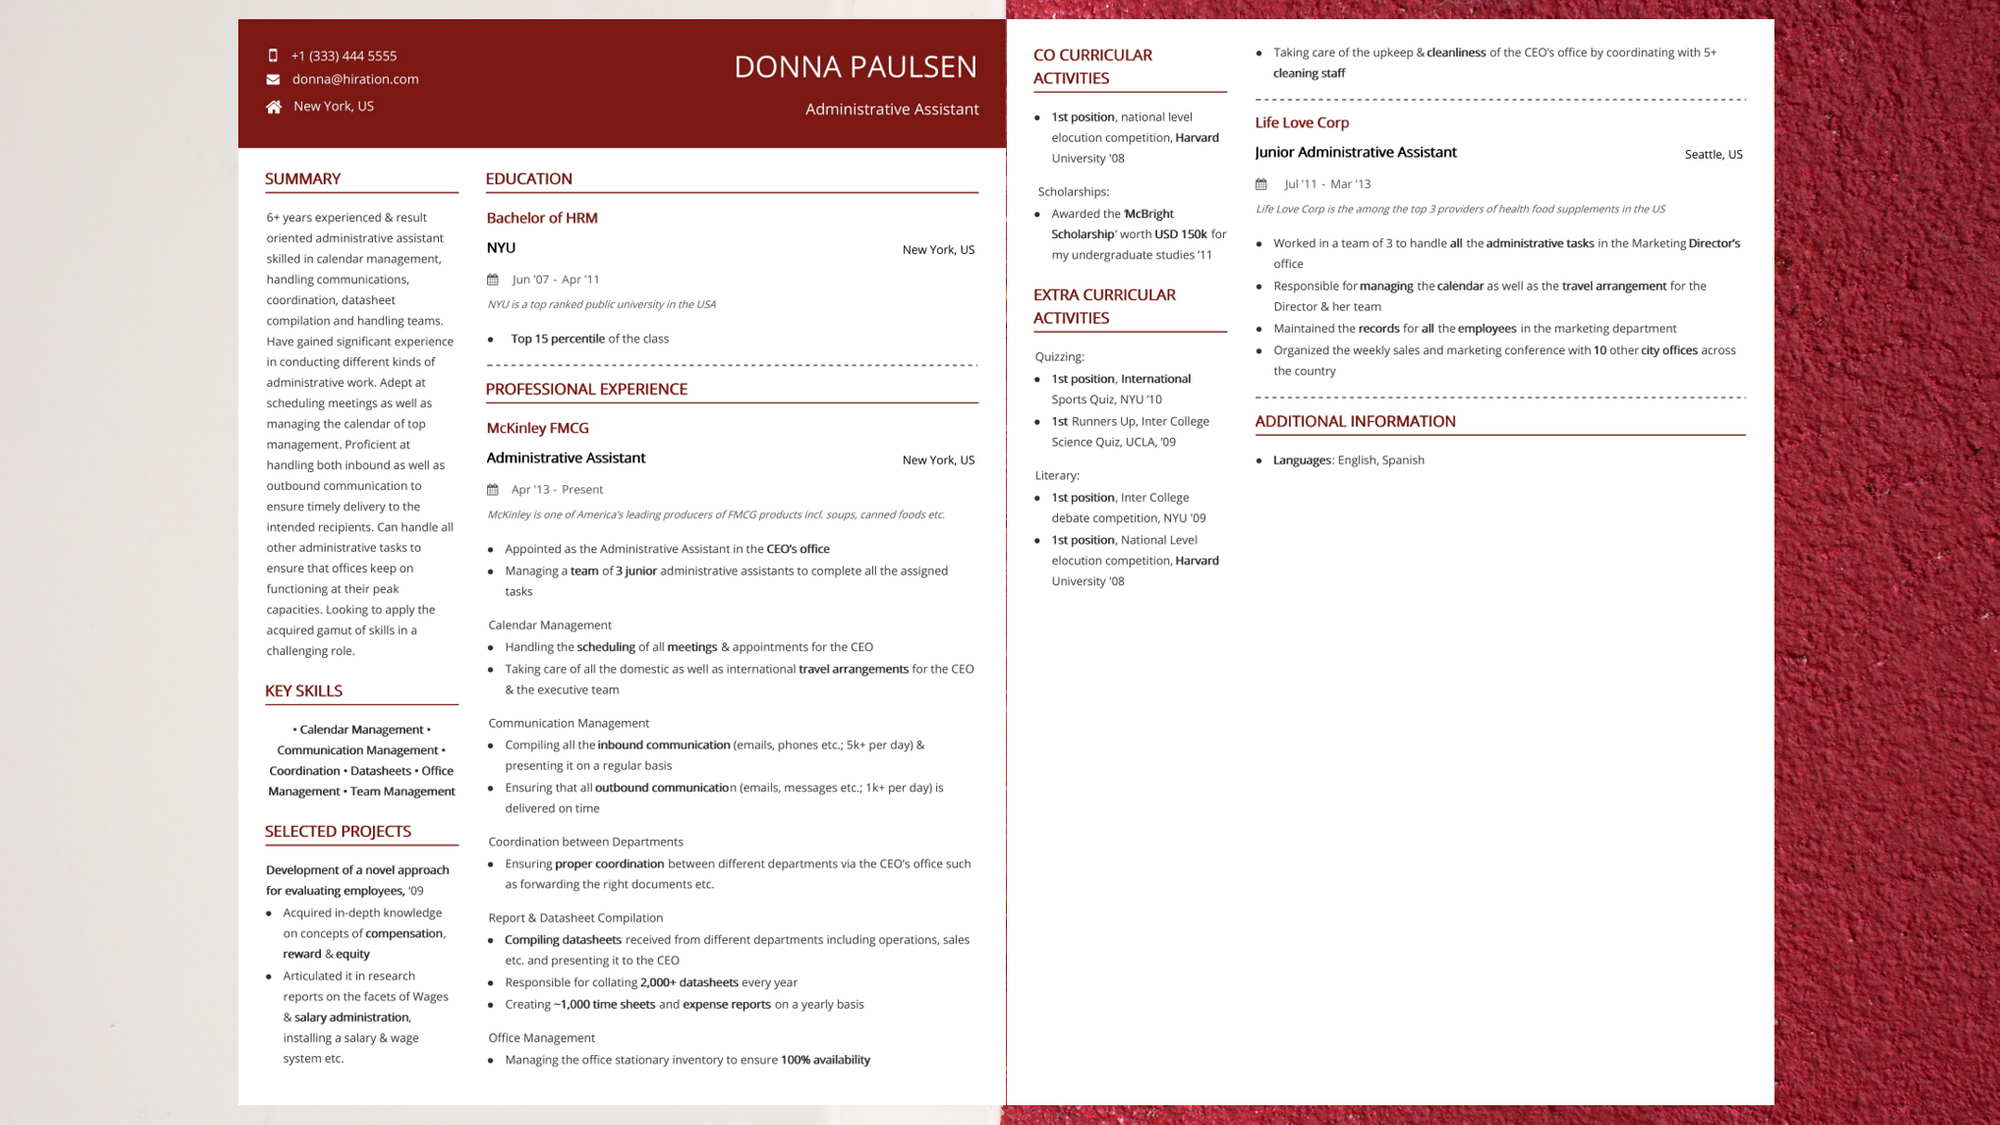 resume examples 2019  professional resume examples with guide